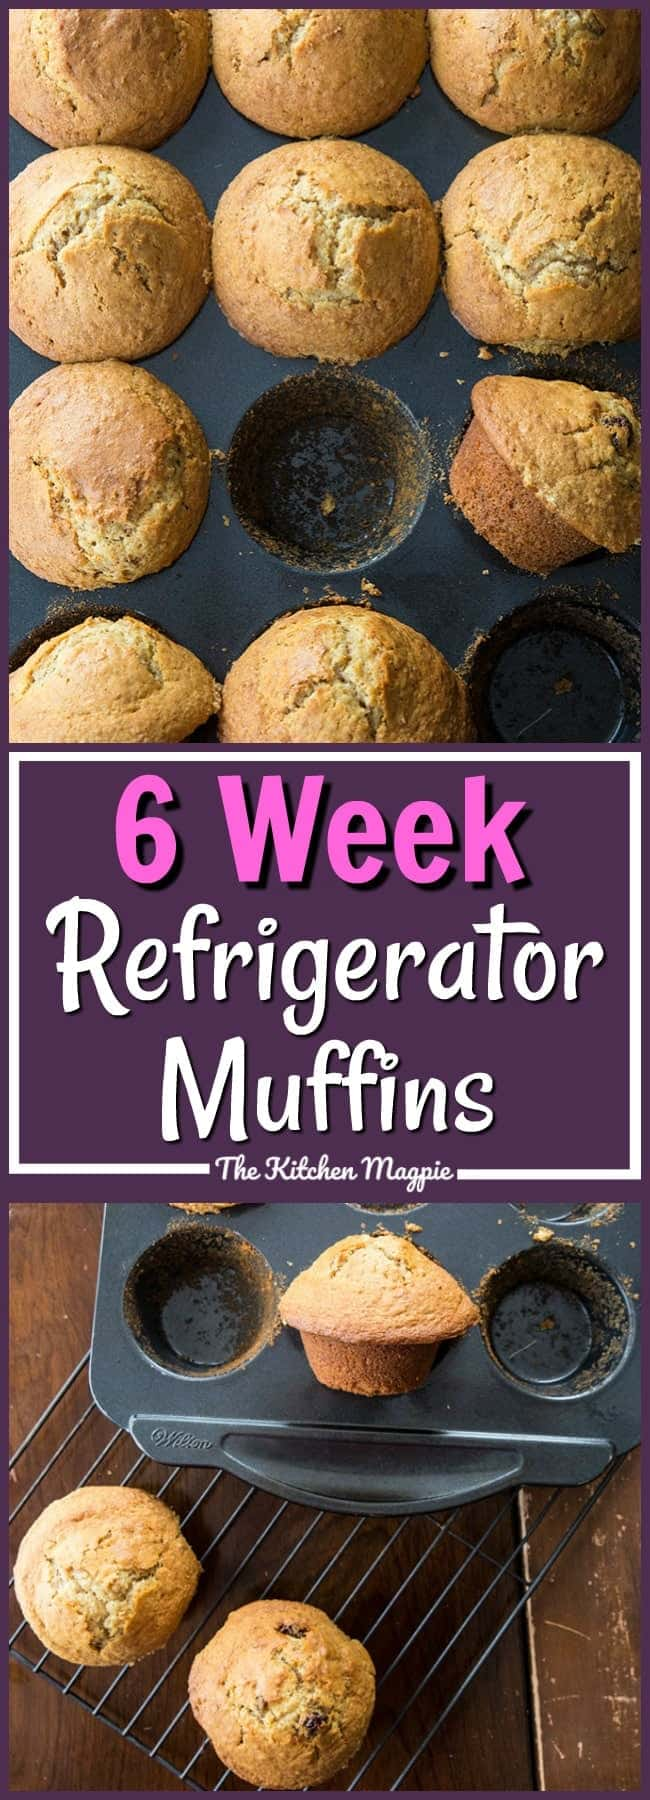 Six Week Raisin Bran Refrigerator Muffins from @kitchenmagpie. My mom kept this batter in a huge lidded Tupperware bowl or ice cream pail in the fridge! Who else's mom had this in the fridge when they were kids? #recipe #branmuffins #muffins #breakfast #family